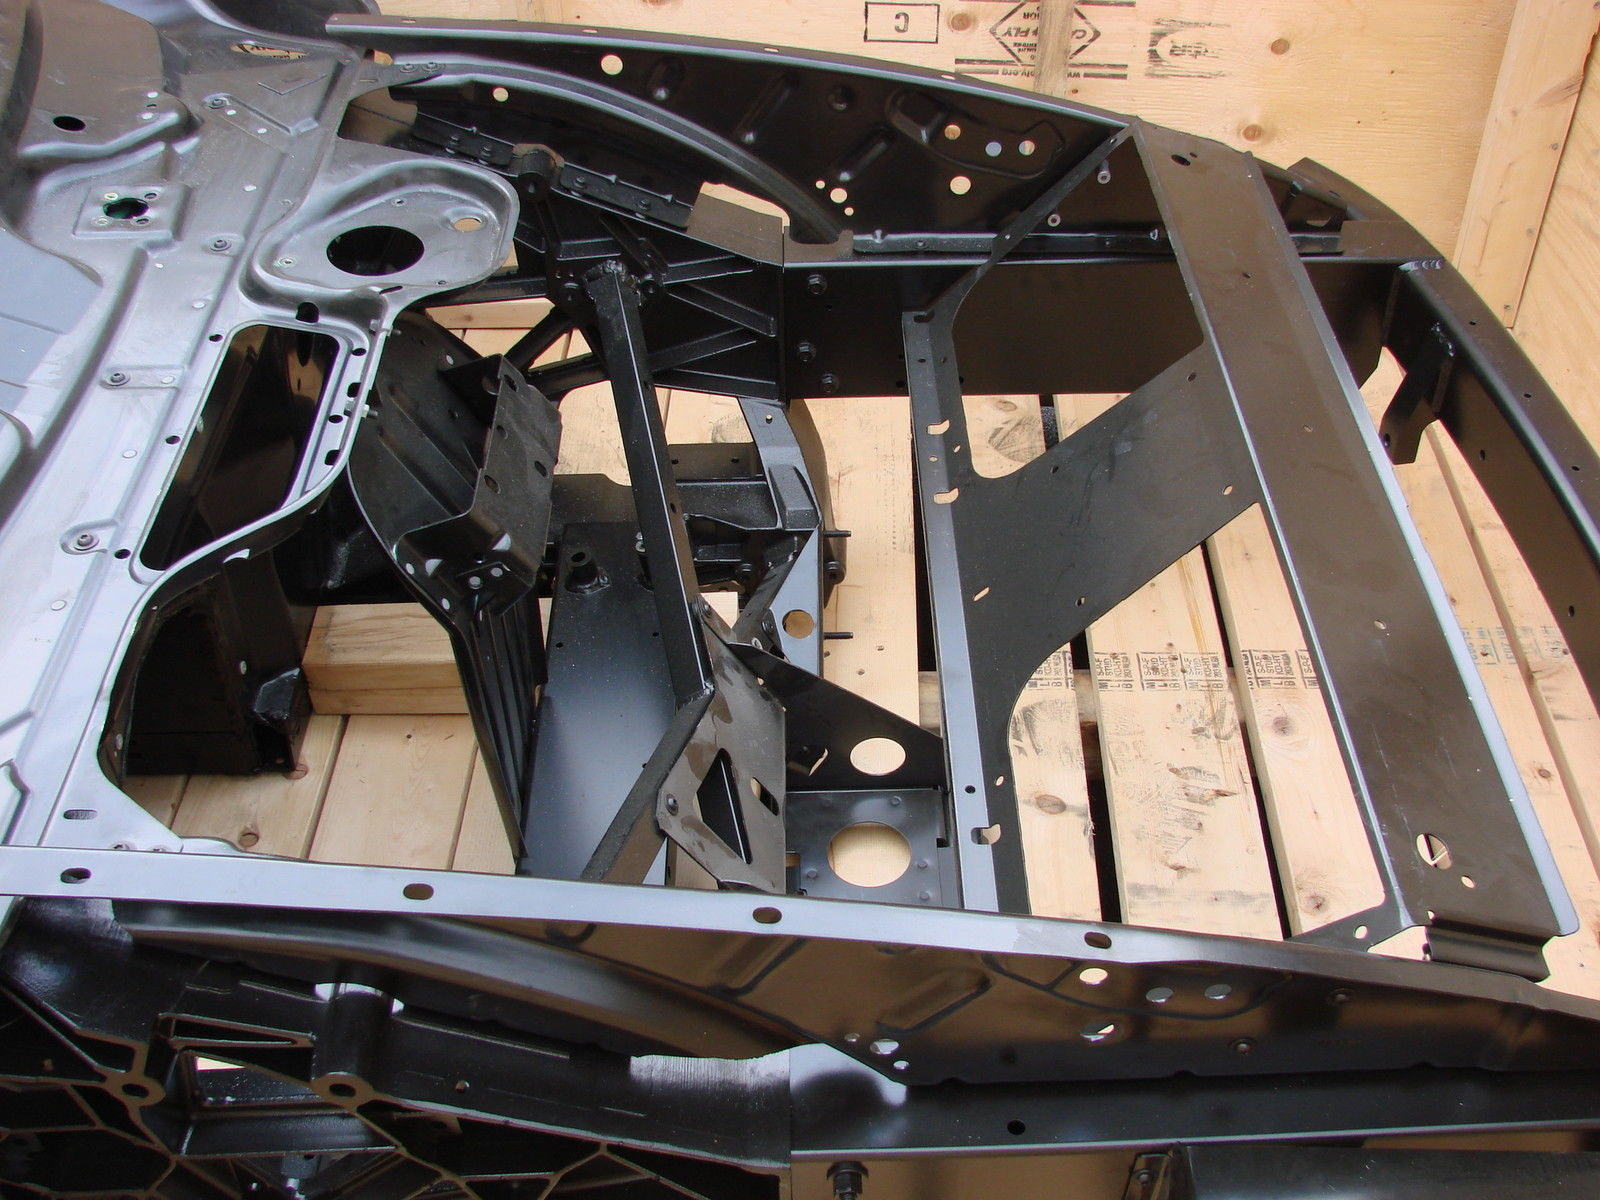 Ebay Ad Link  Ford Gt Supercar Chassis In A Crate